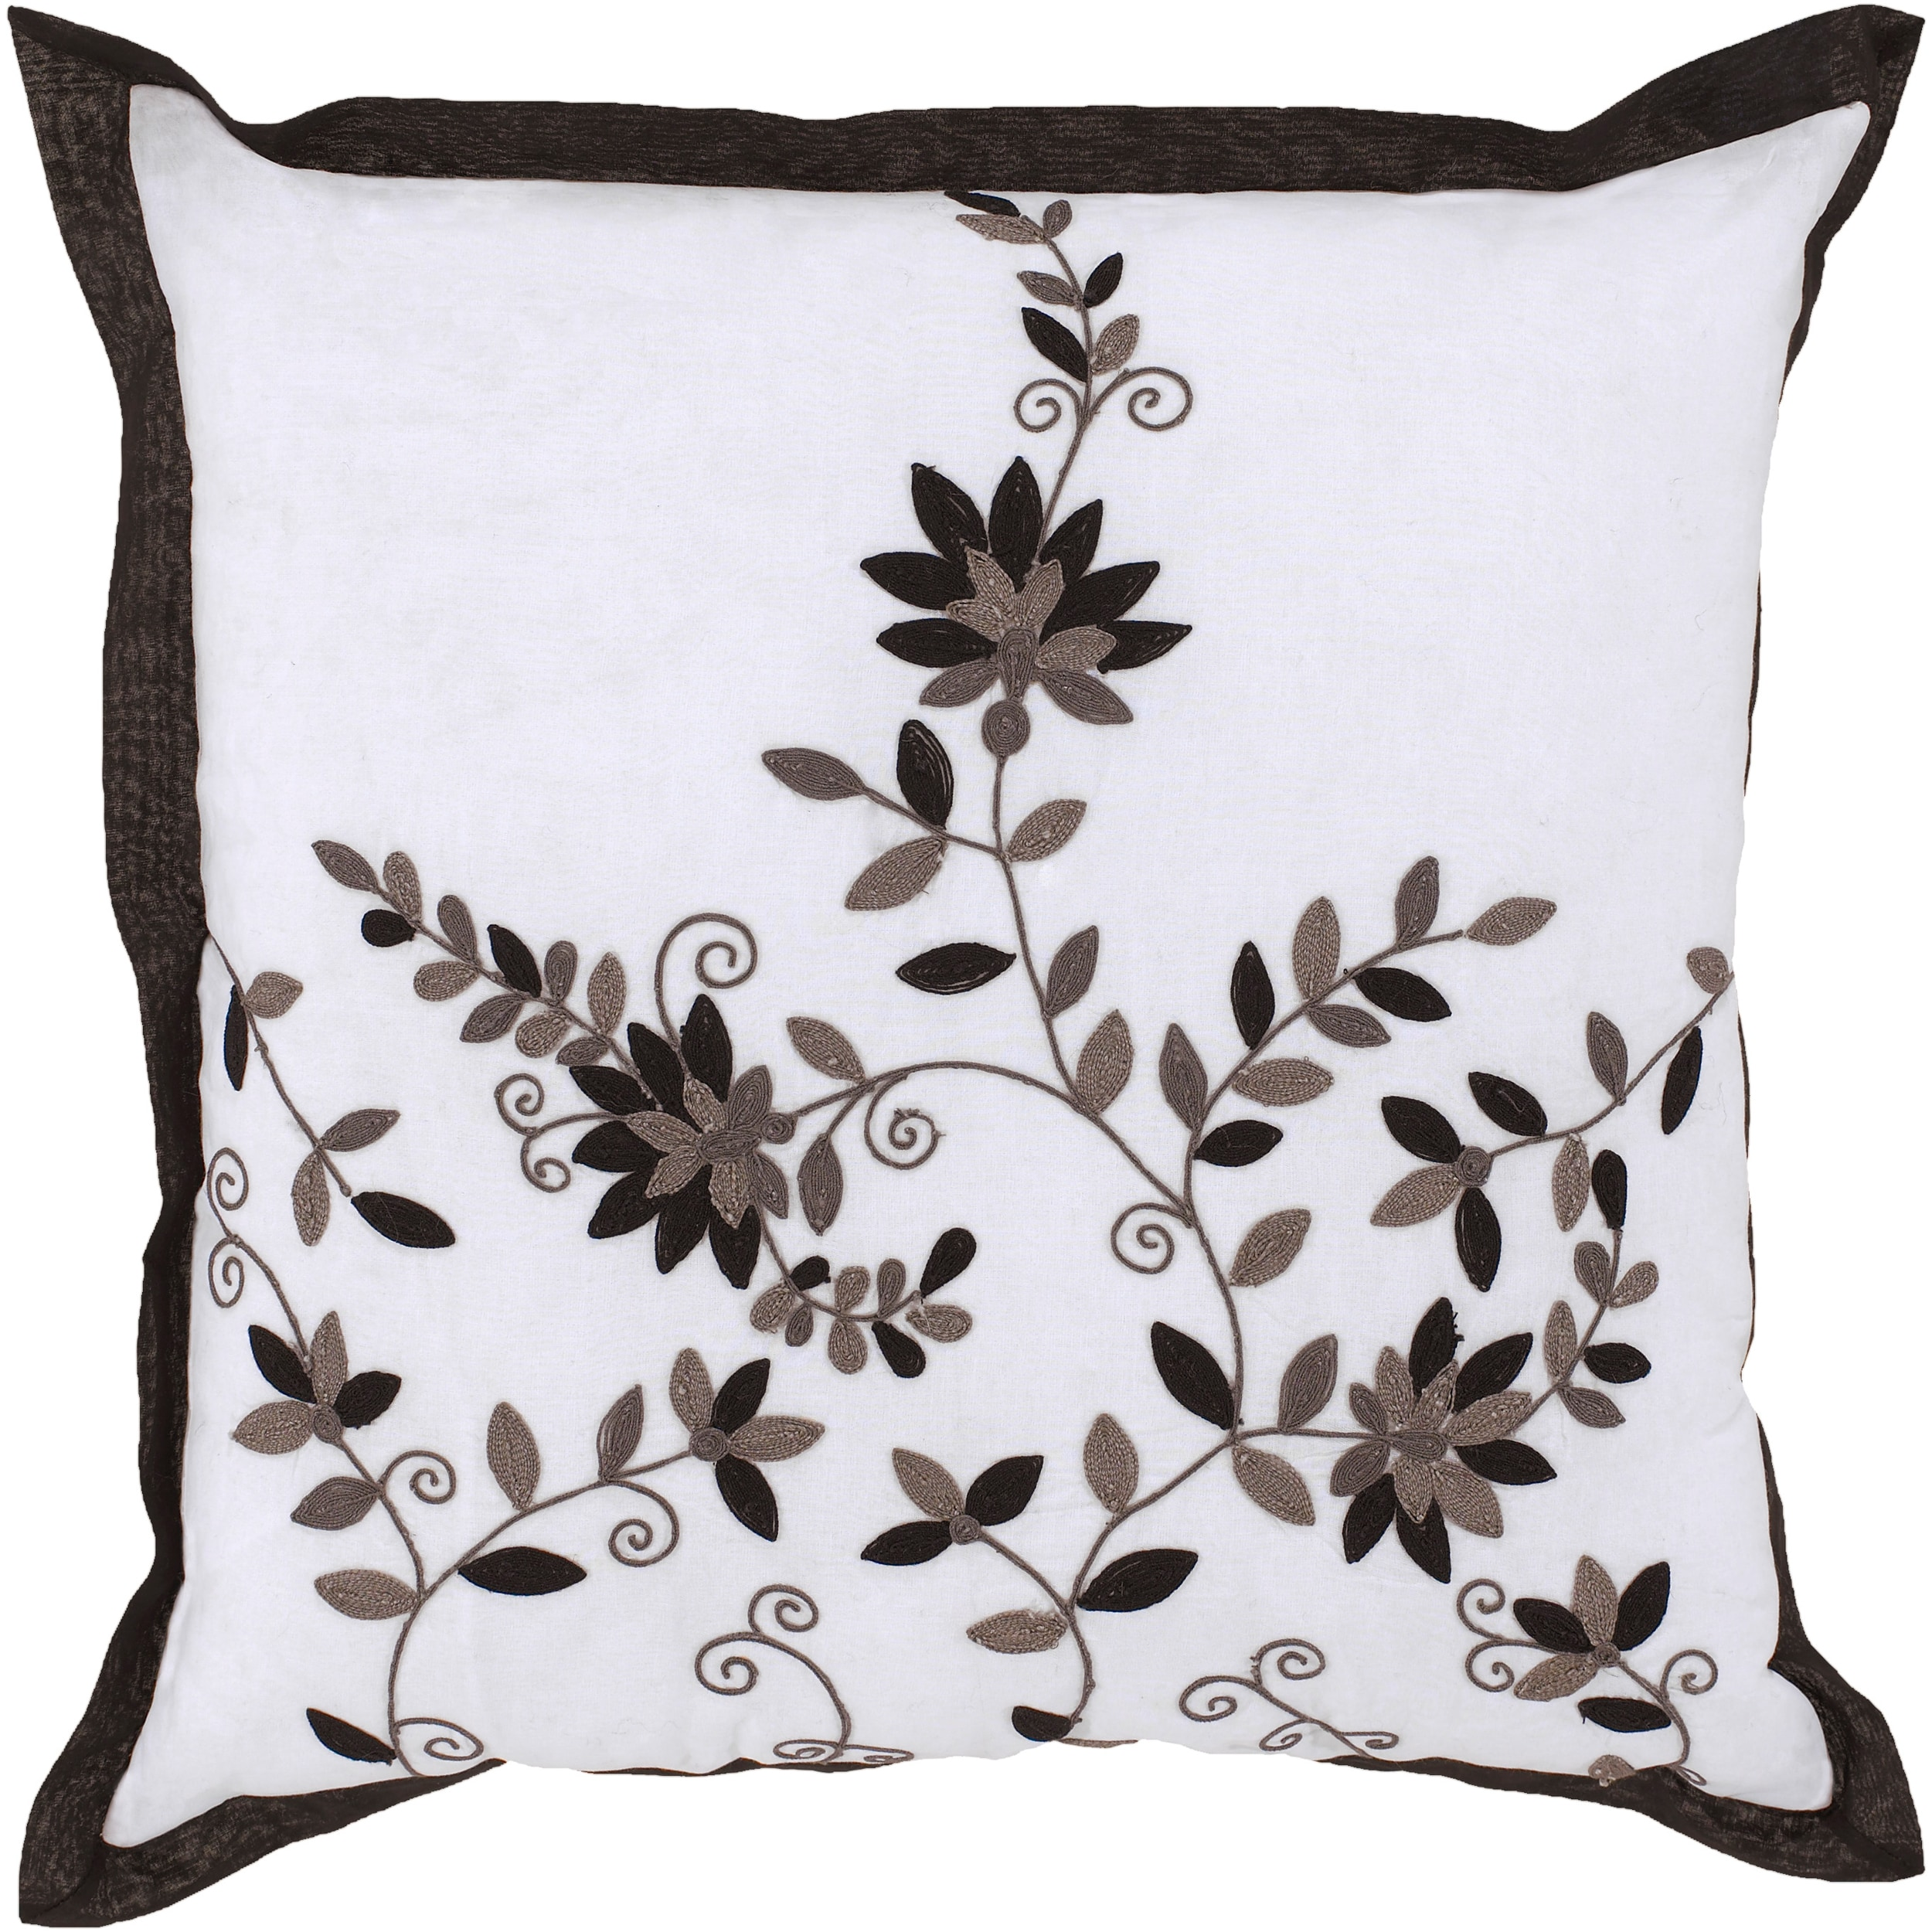 Beil White/ Black Floral Decorative Pillow